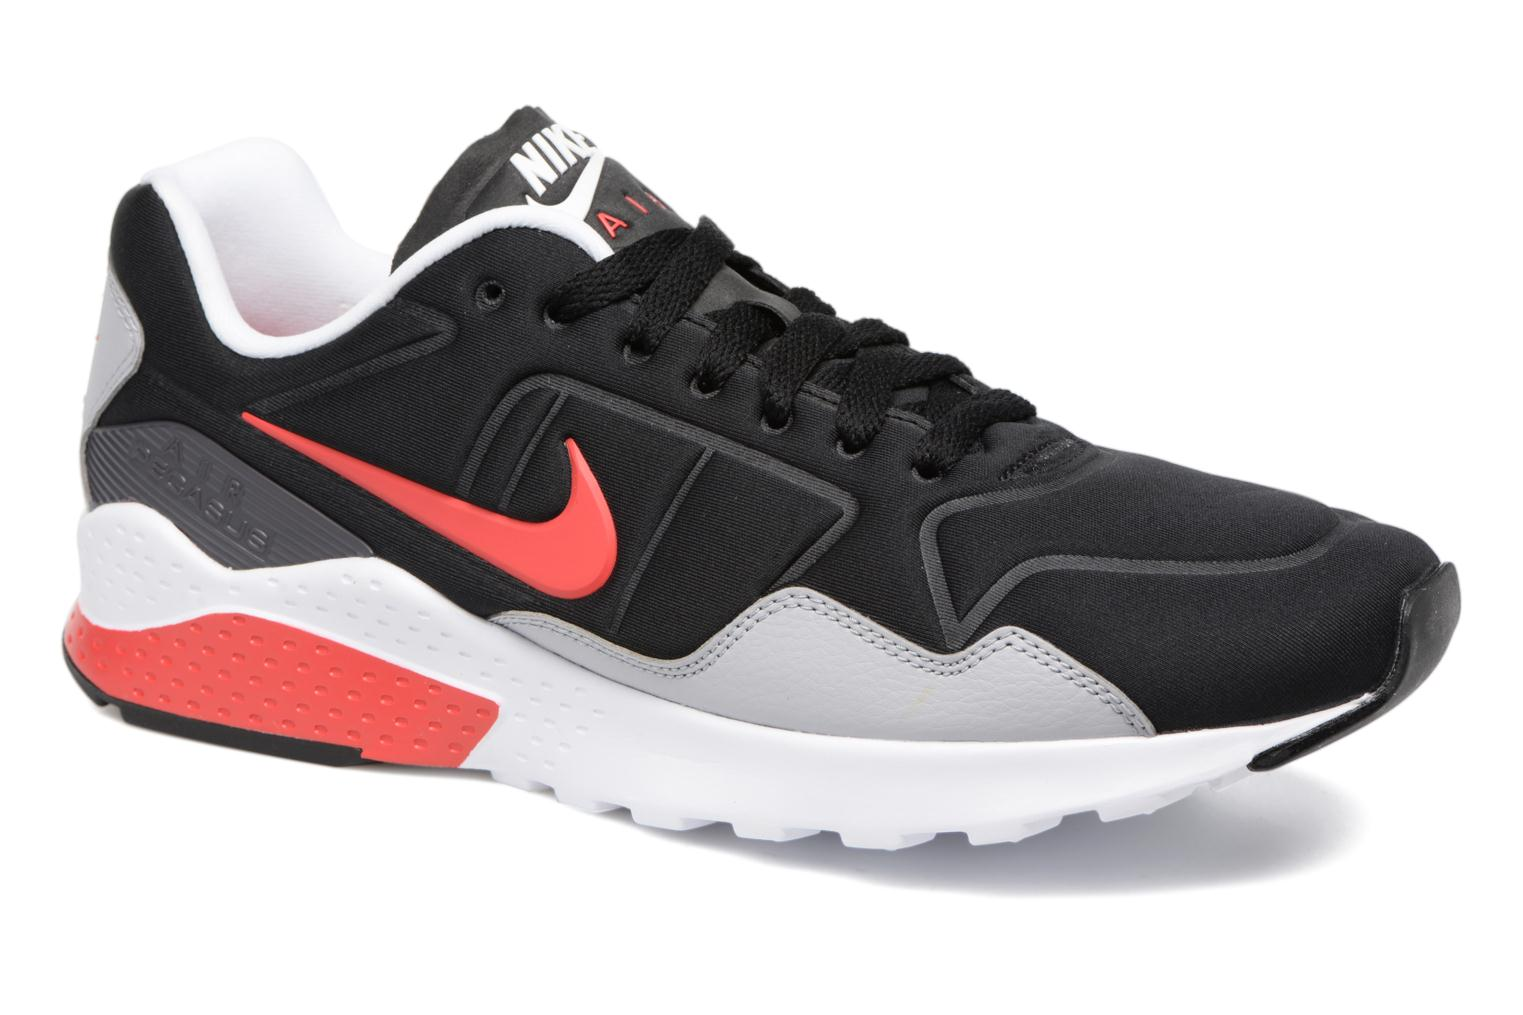 Nike Air Zoom Pegasus 92 Black/Atom Red-Wolf Grey-Atom Red